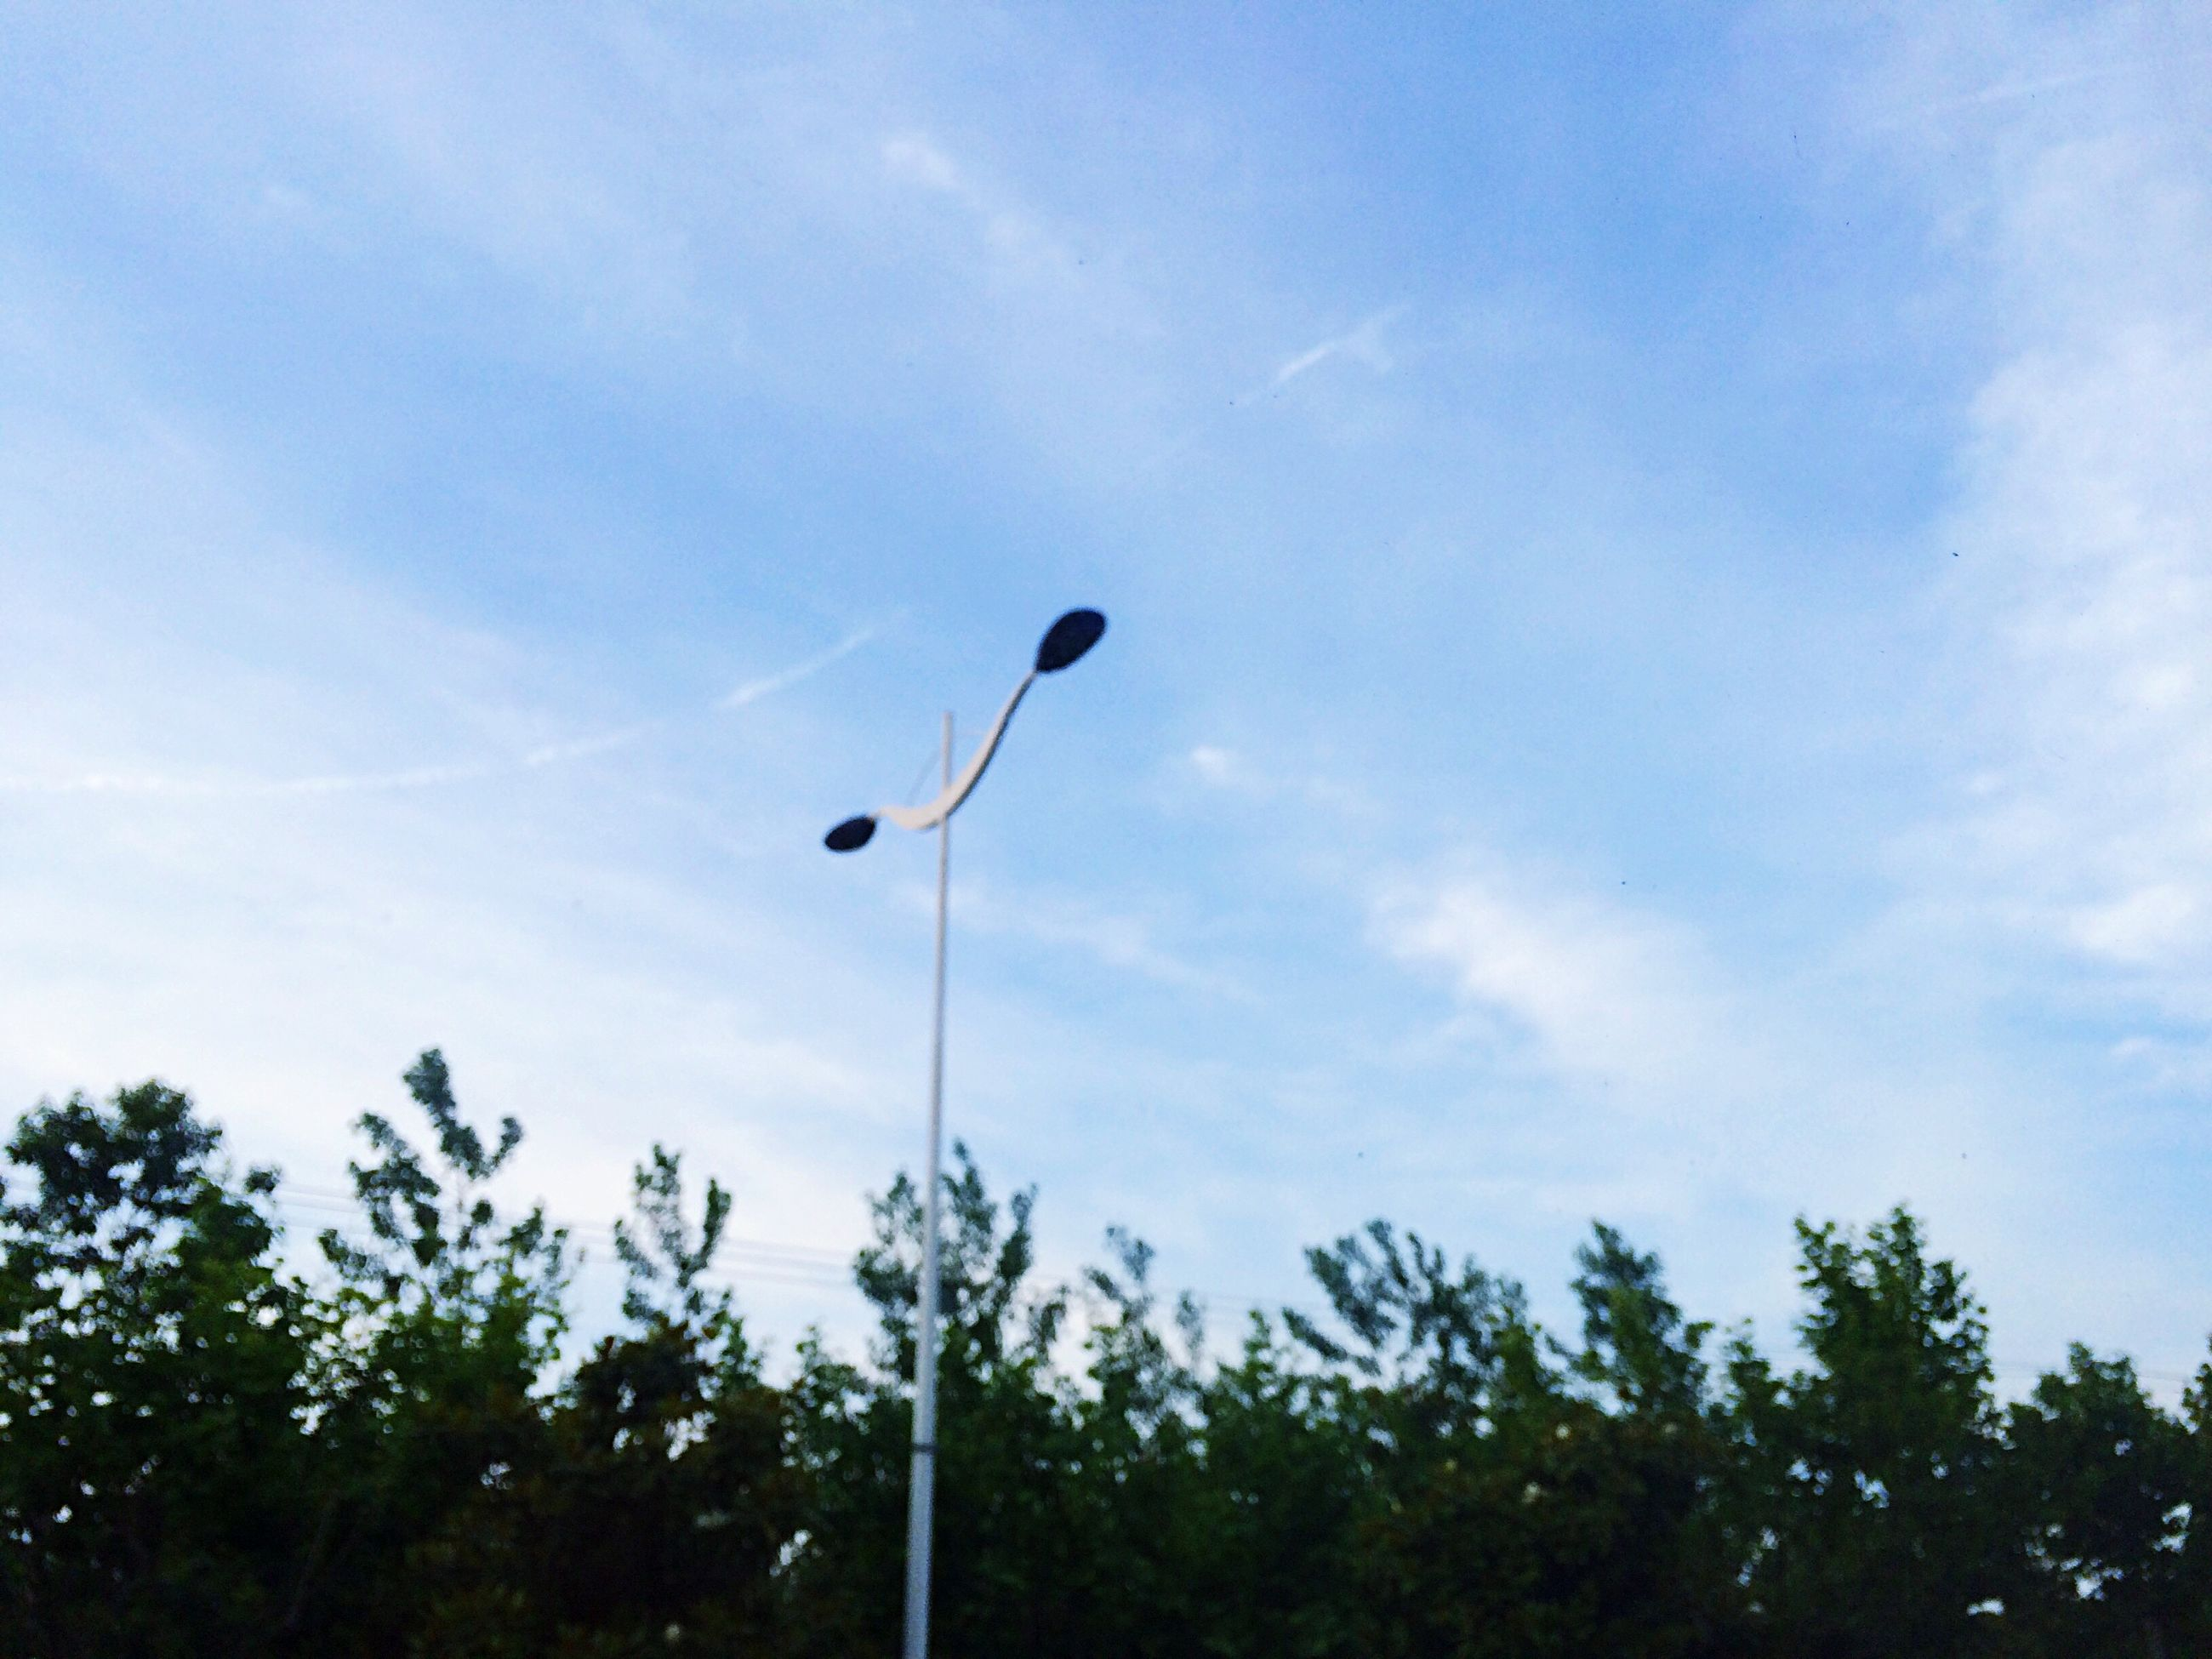 low angle view, sky, street light, tree, cloud - sky, cloud, blue, growth, nature, cloudy, tranquility, lighting equipment, beauty in nature, silhouette, outdoors, day, no people, scenics, pole, tranquil scene